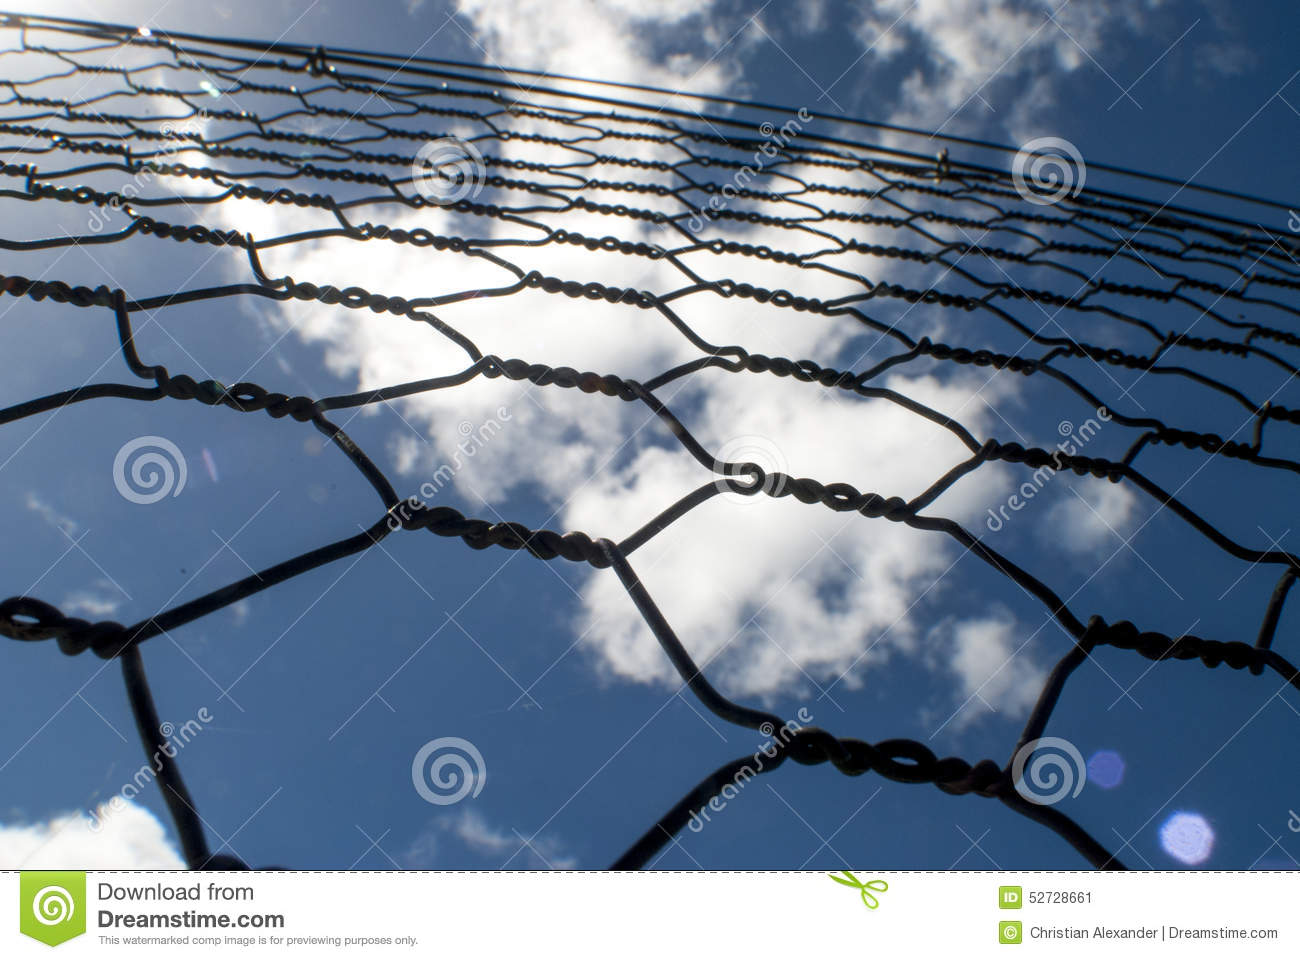 Chicken wire fence stock image. Image of blue, security - 52728661